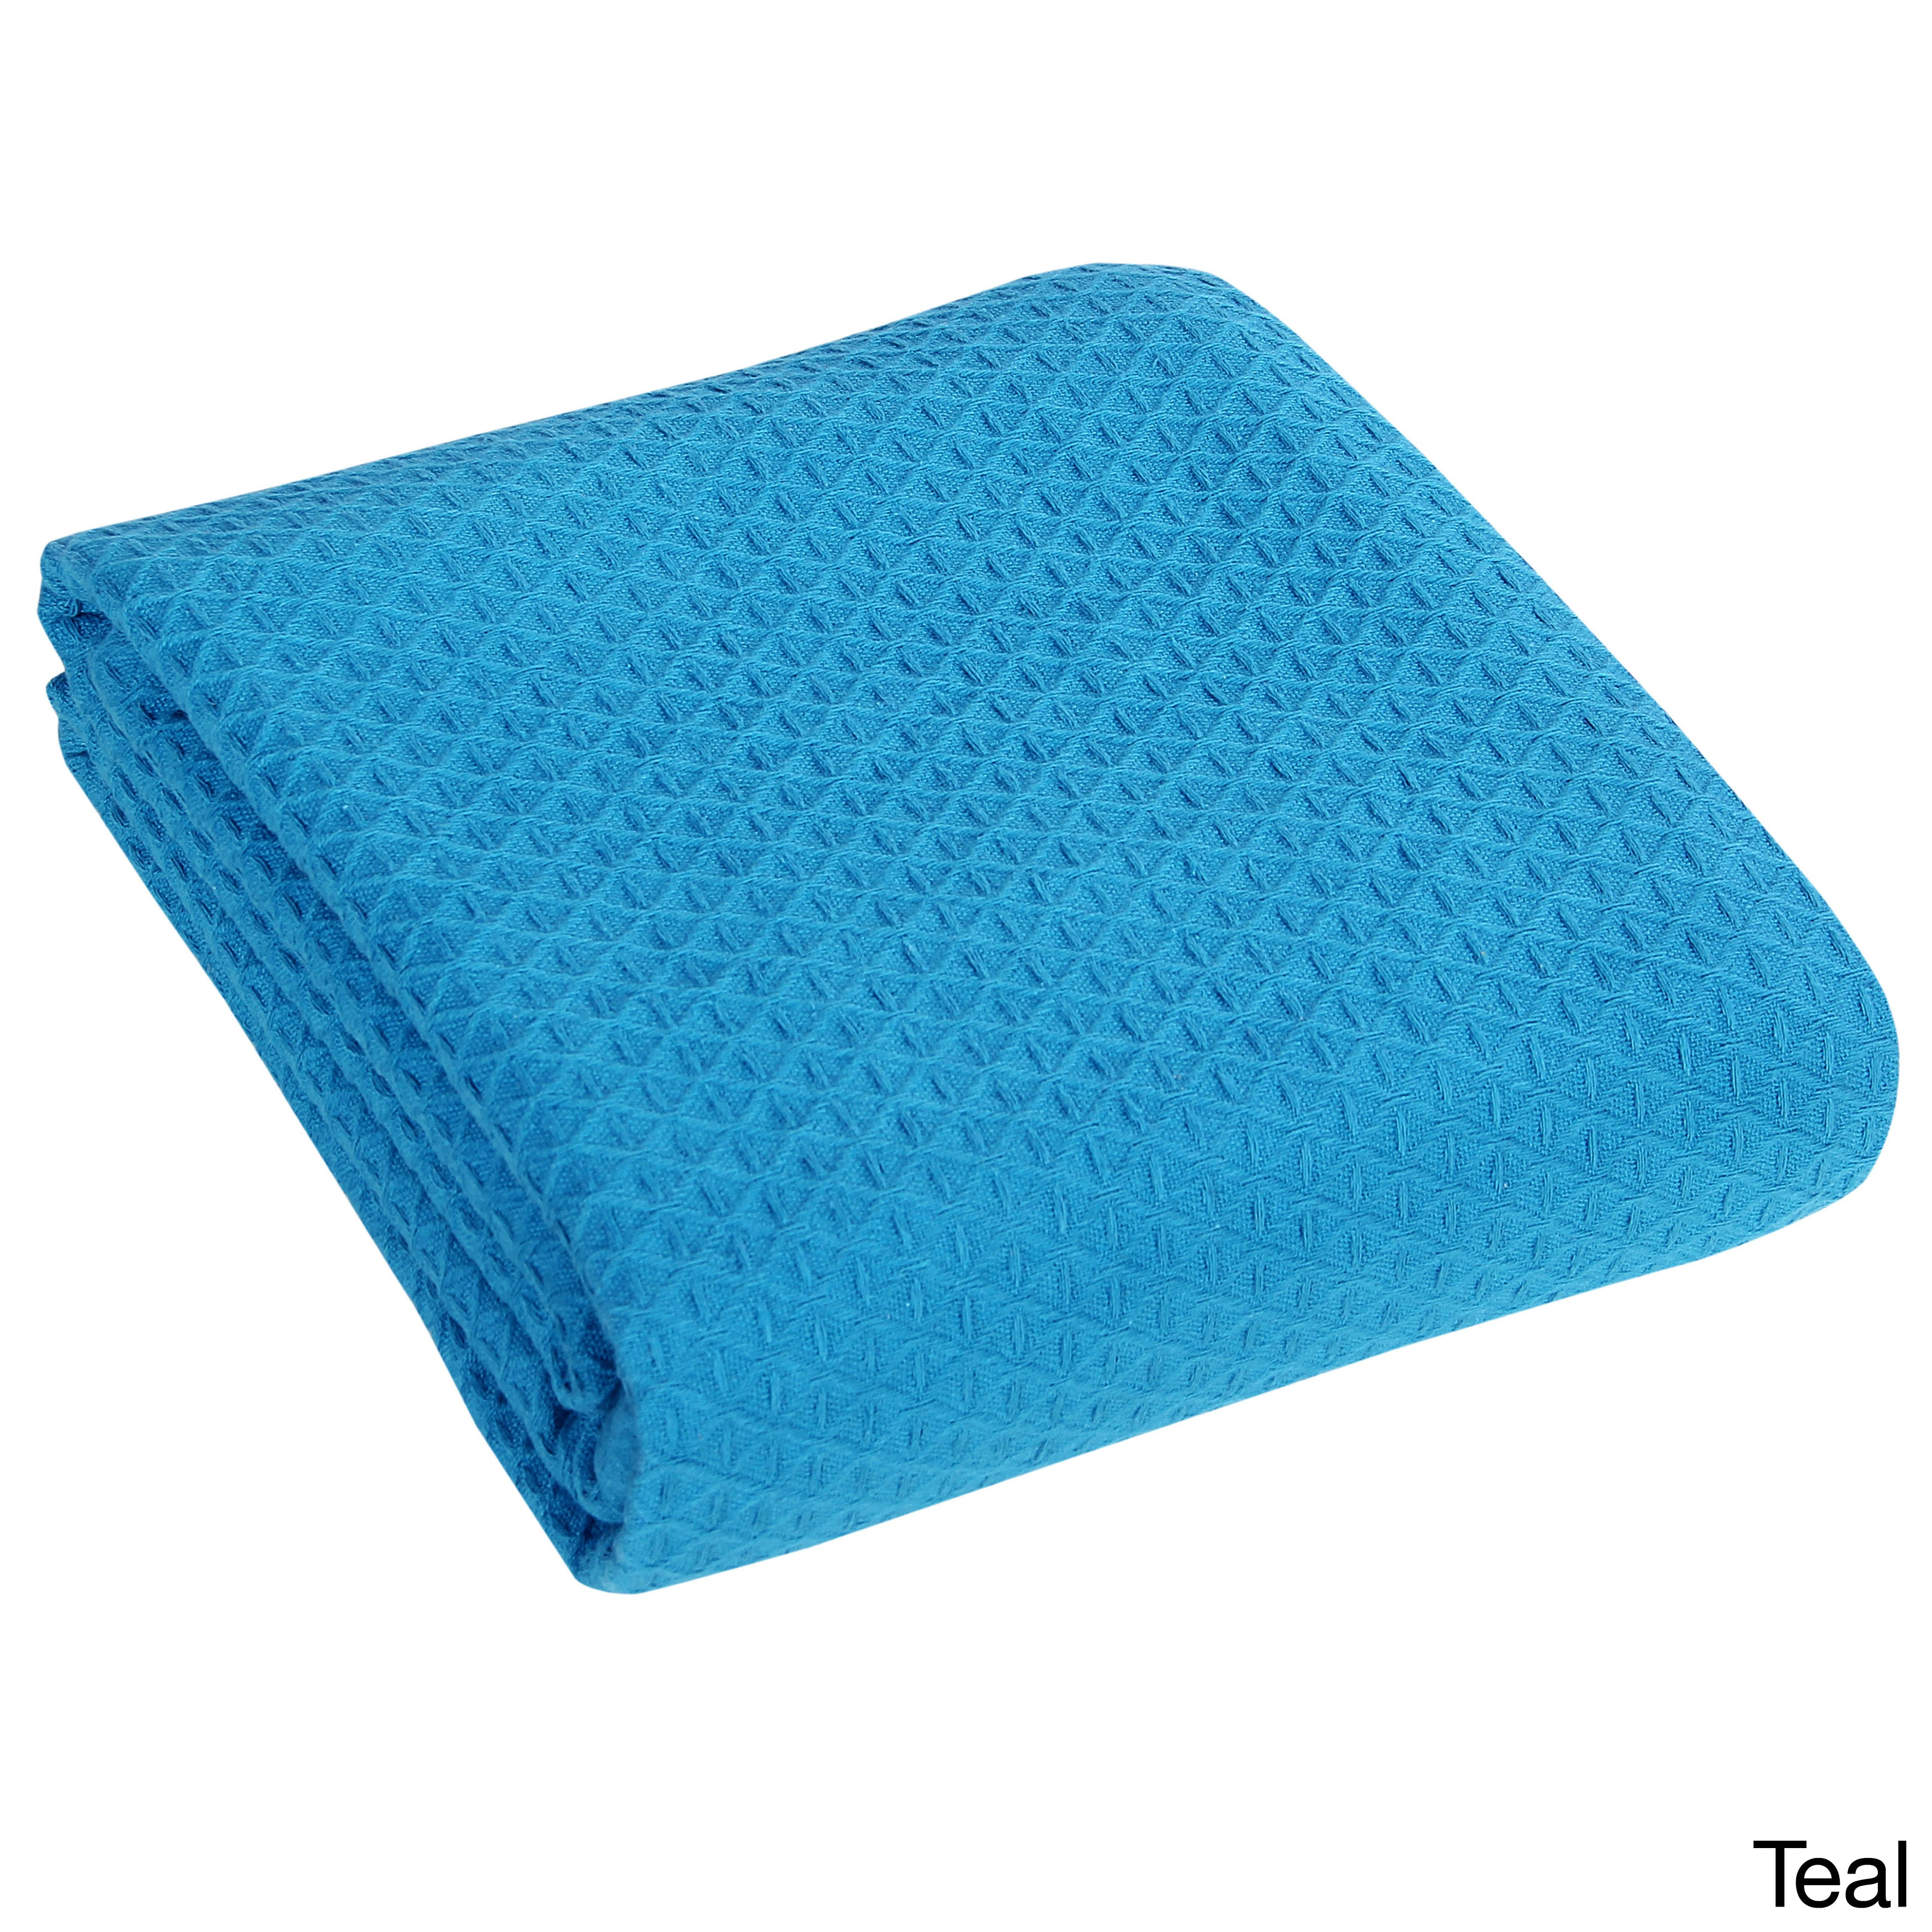 Classic All Seasons Super Soft Lightweight Cotton Blanket King, Teal